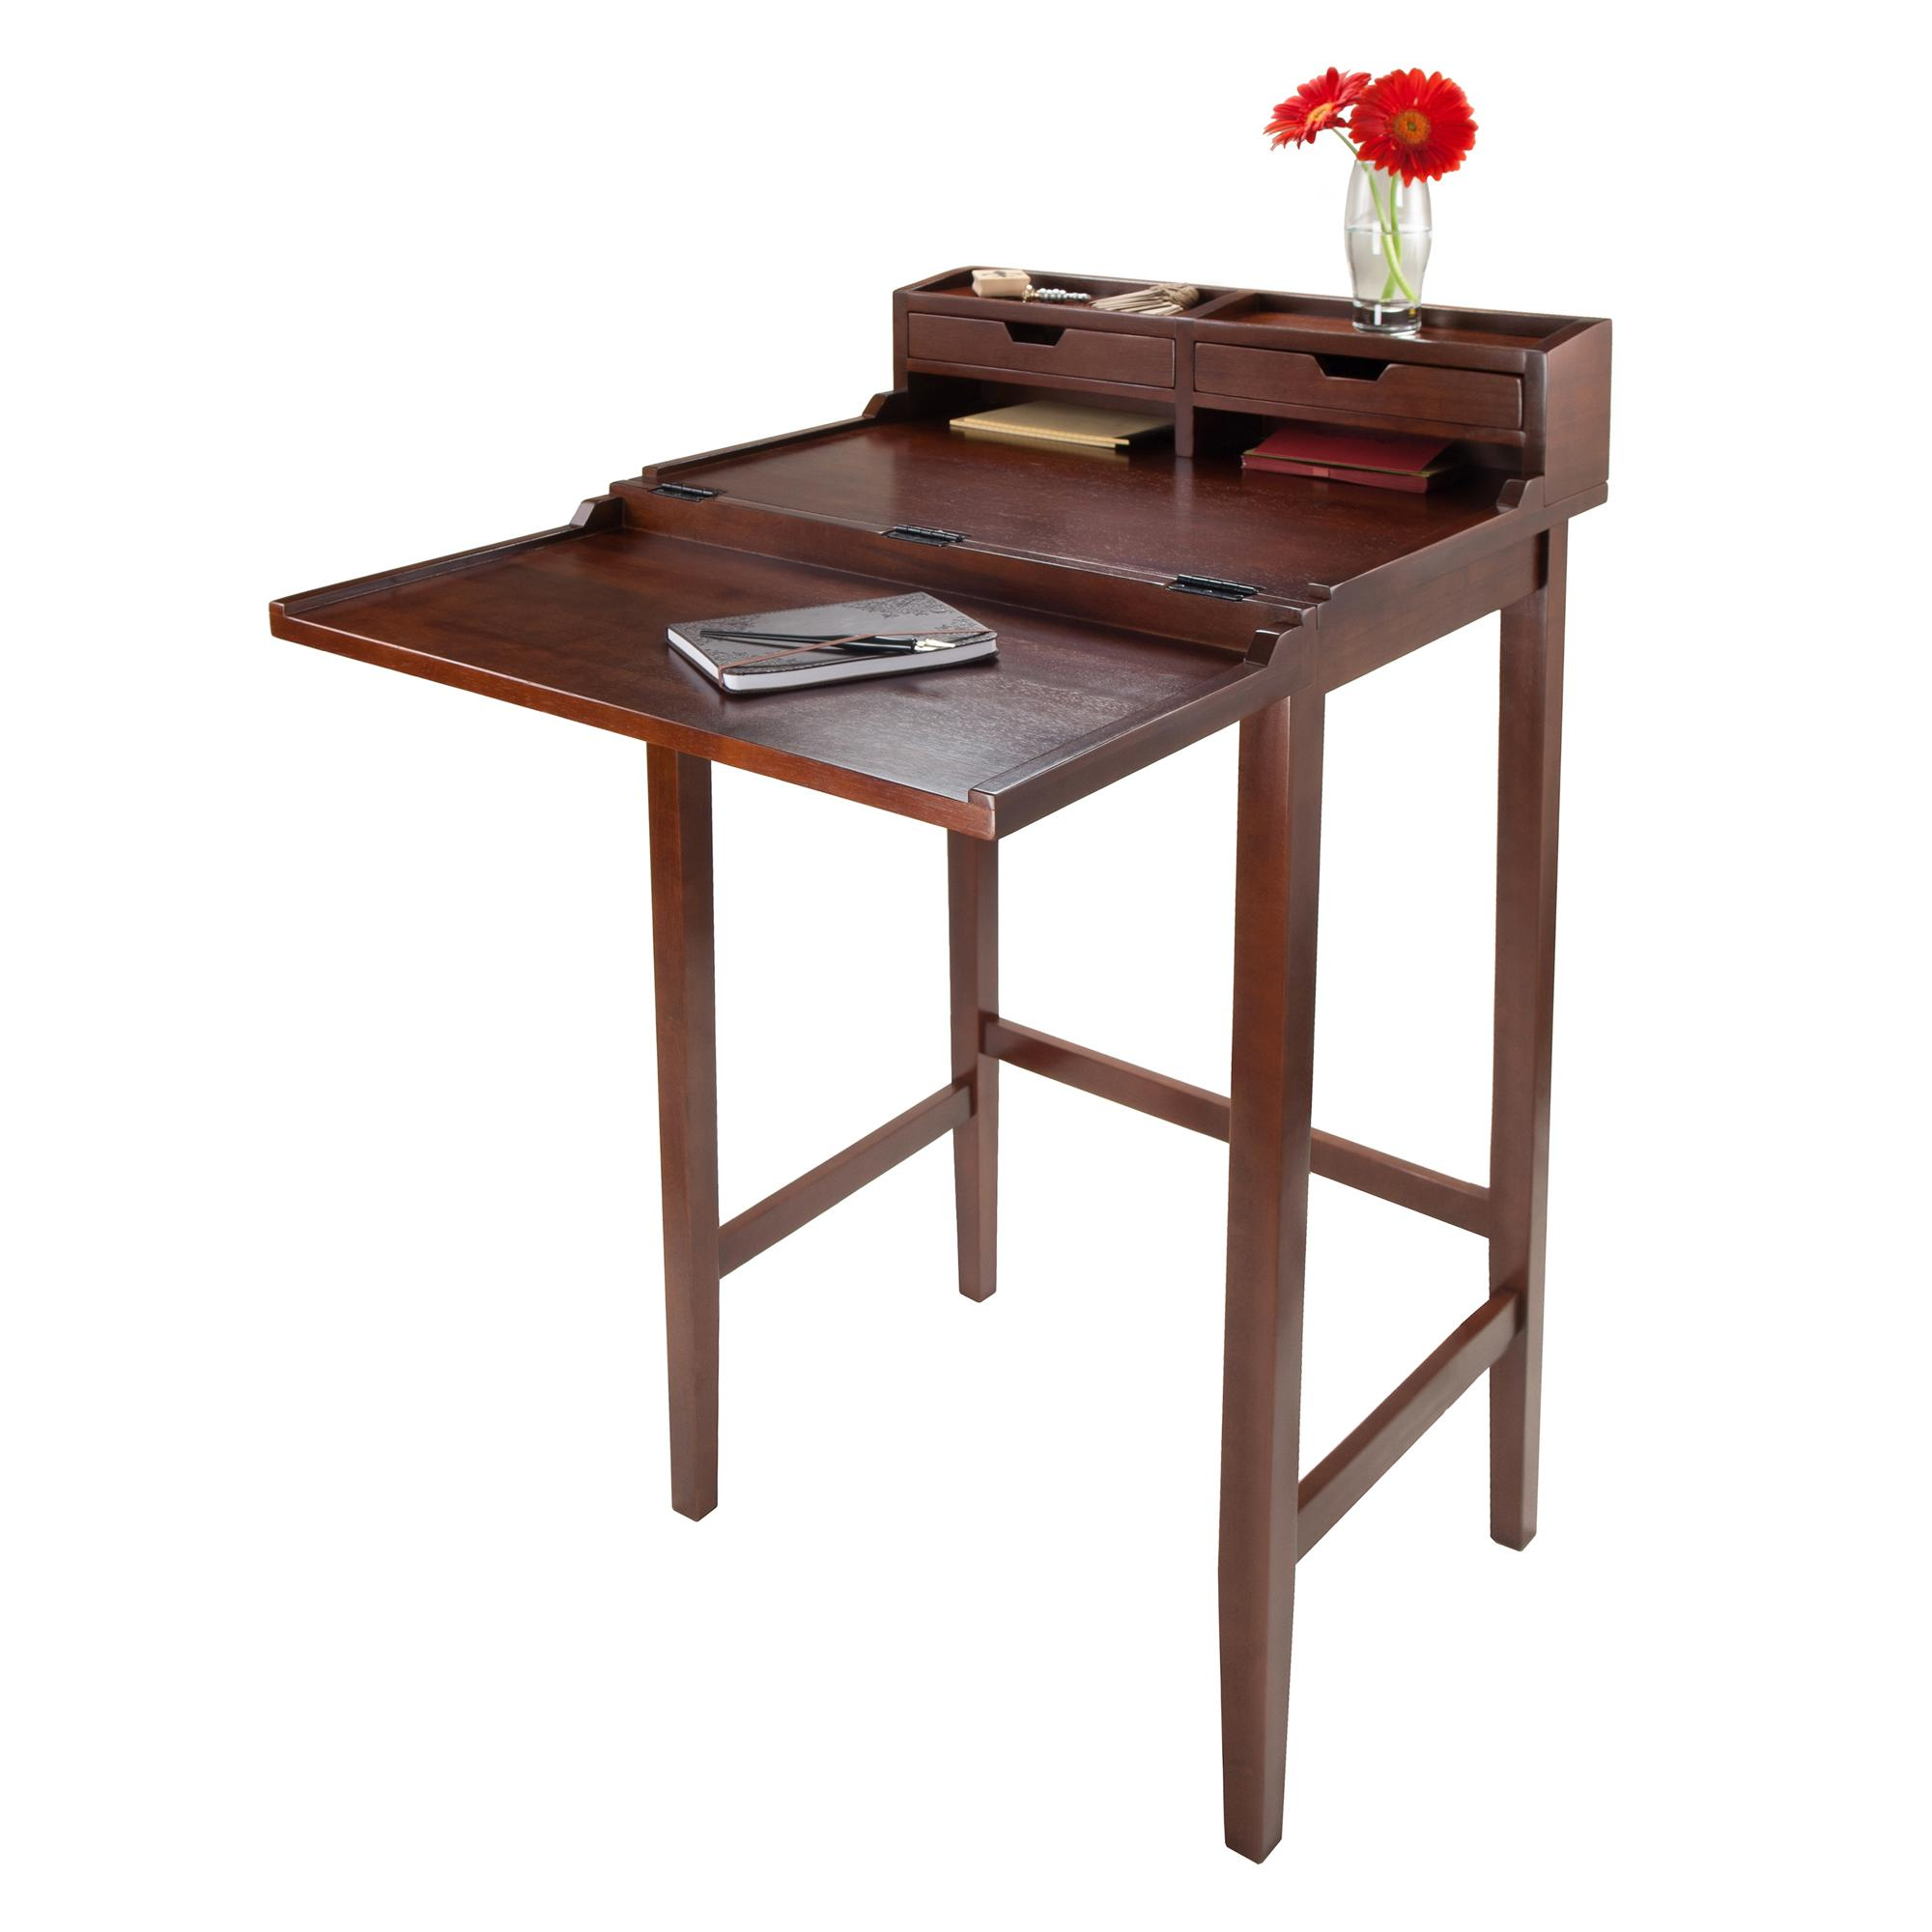 italian chairish brown burl desk product wood